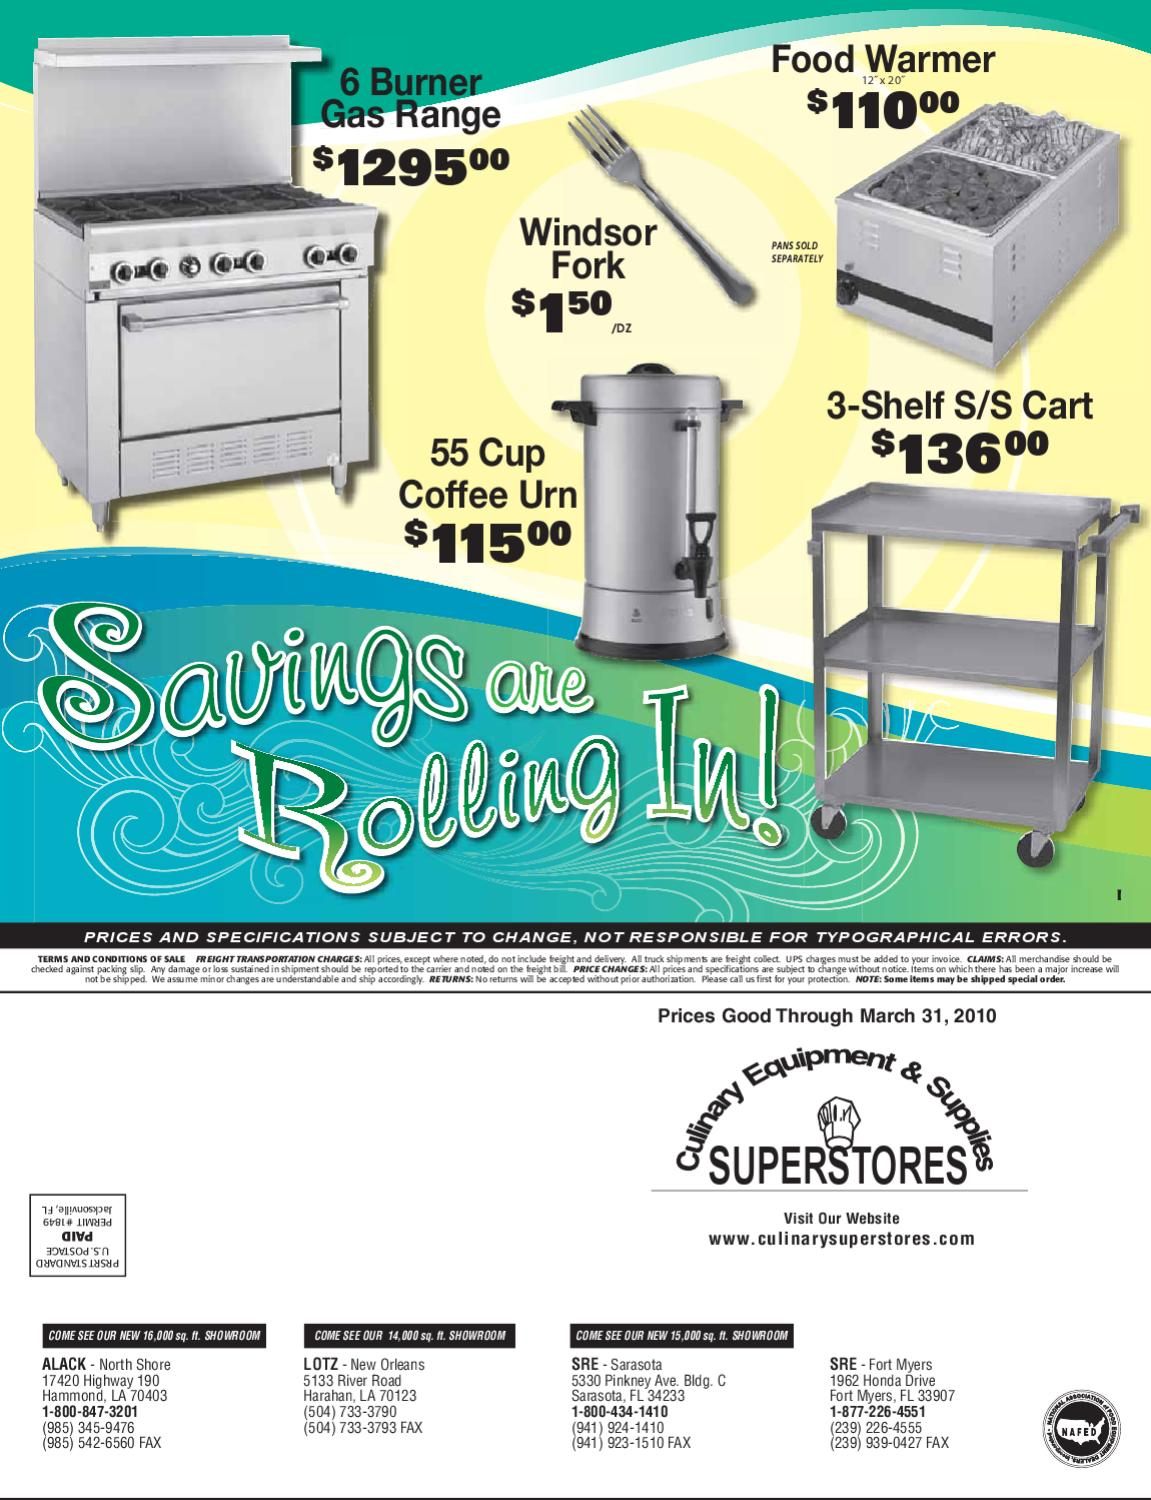 Culinary Superstores - Savings are Rolling In! by Kenneth Verrette ...